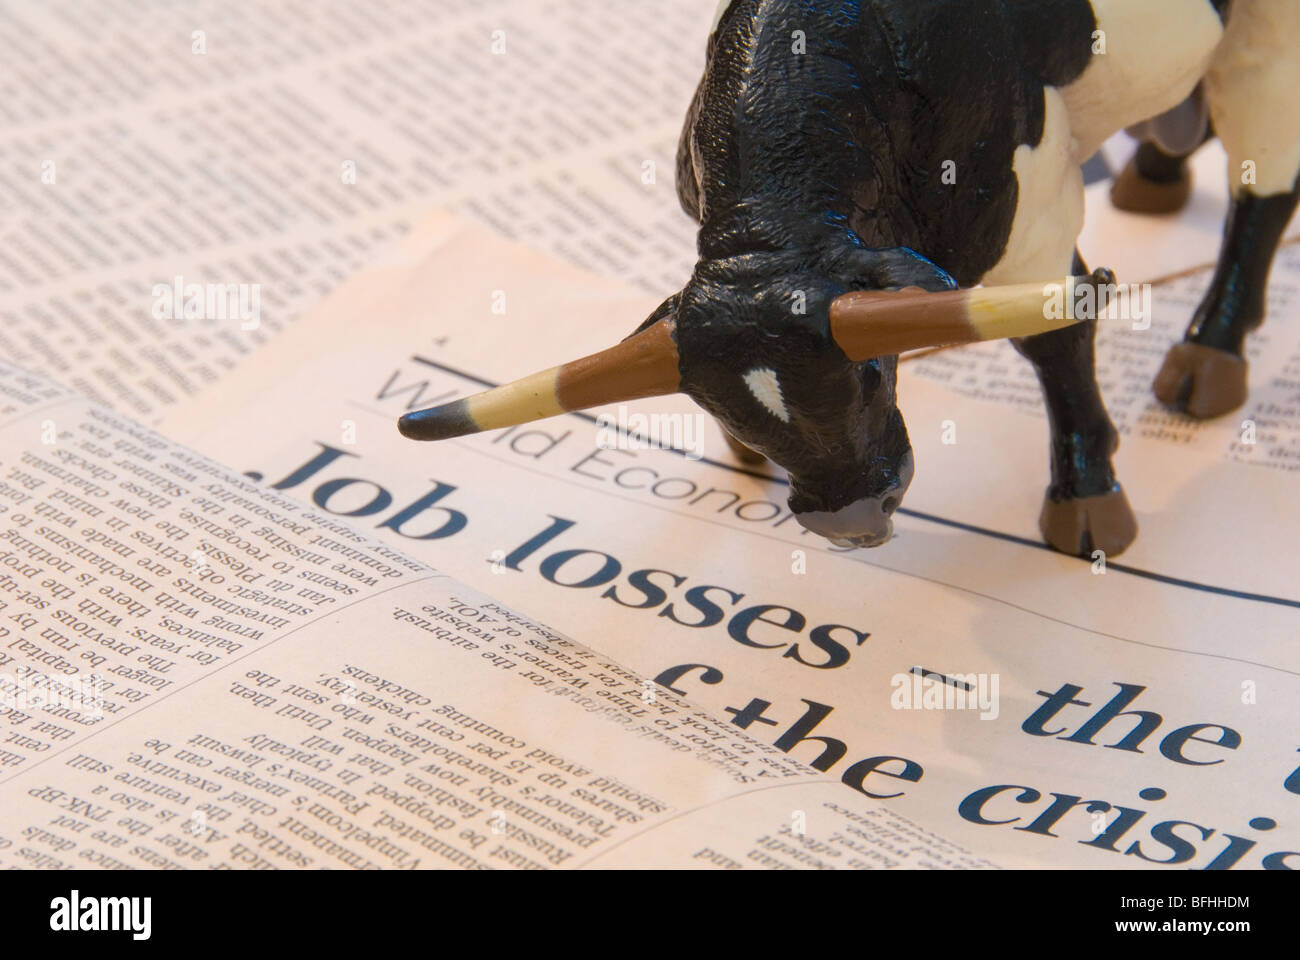 A Bull over the World Economy reports of Job Losses representing the Finance Markets Stock Photo